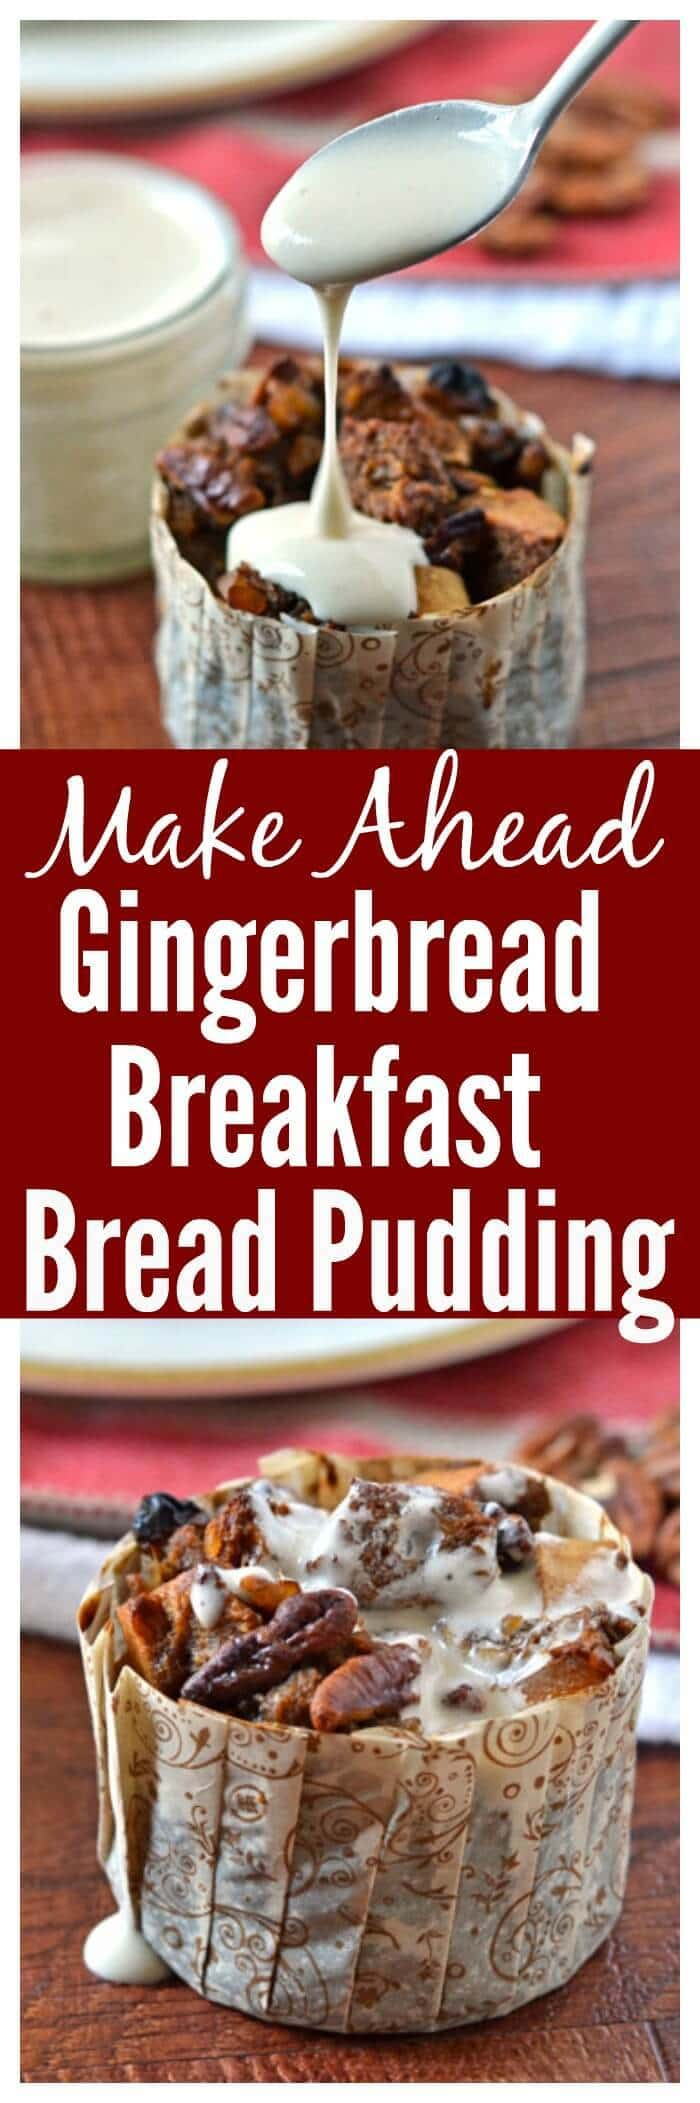 Make Ahead Gingerbread Breakfast Bread Pudding